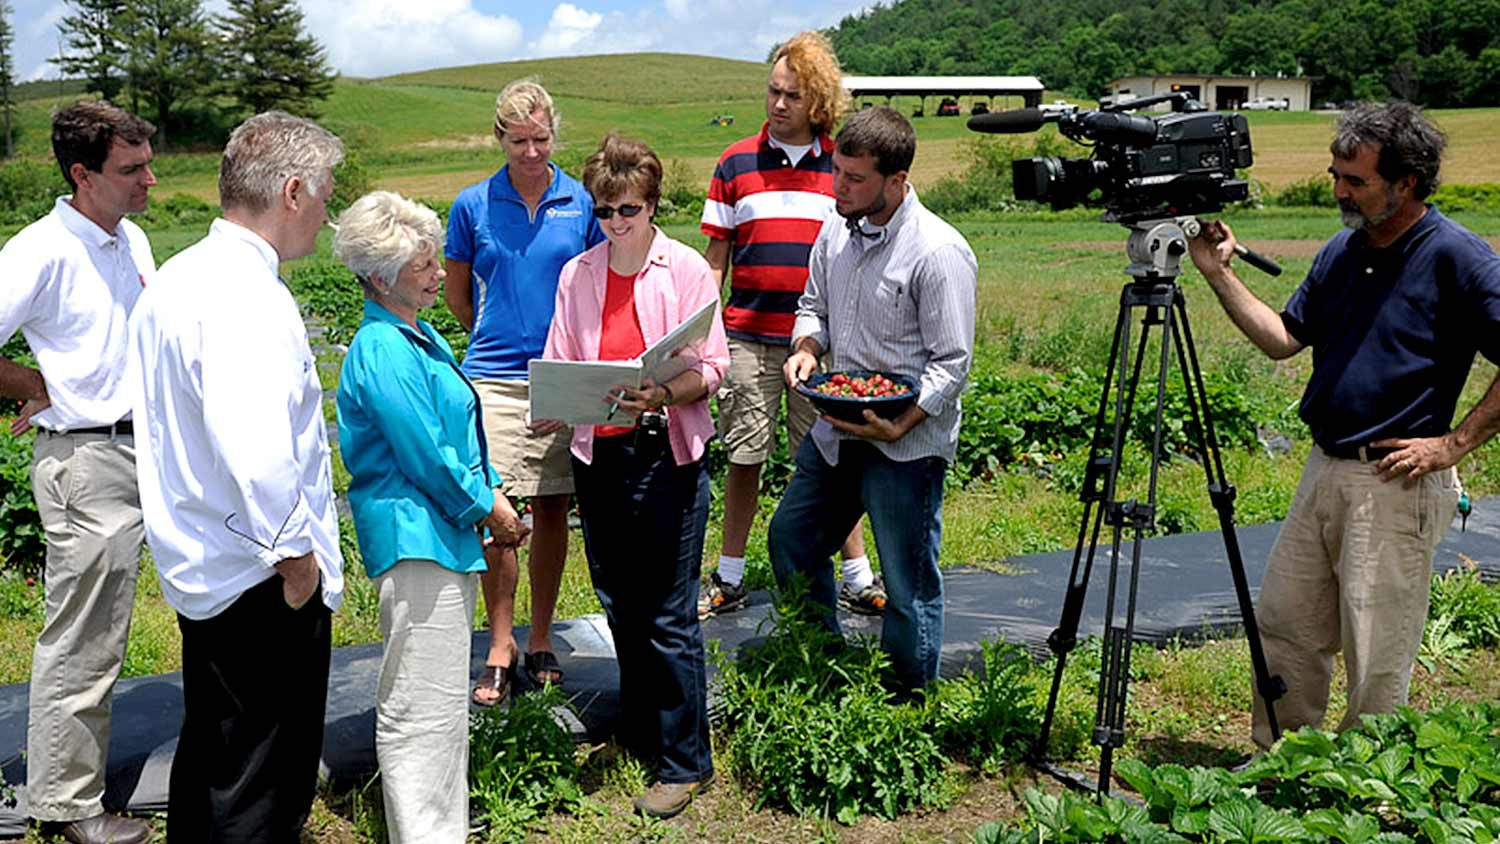 CALS Communications filming segment on strawberries for The Produce Lady video series.